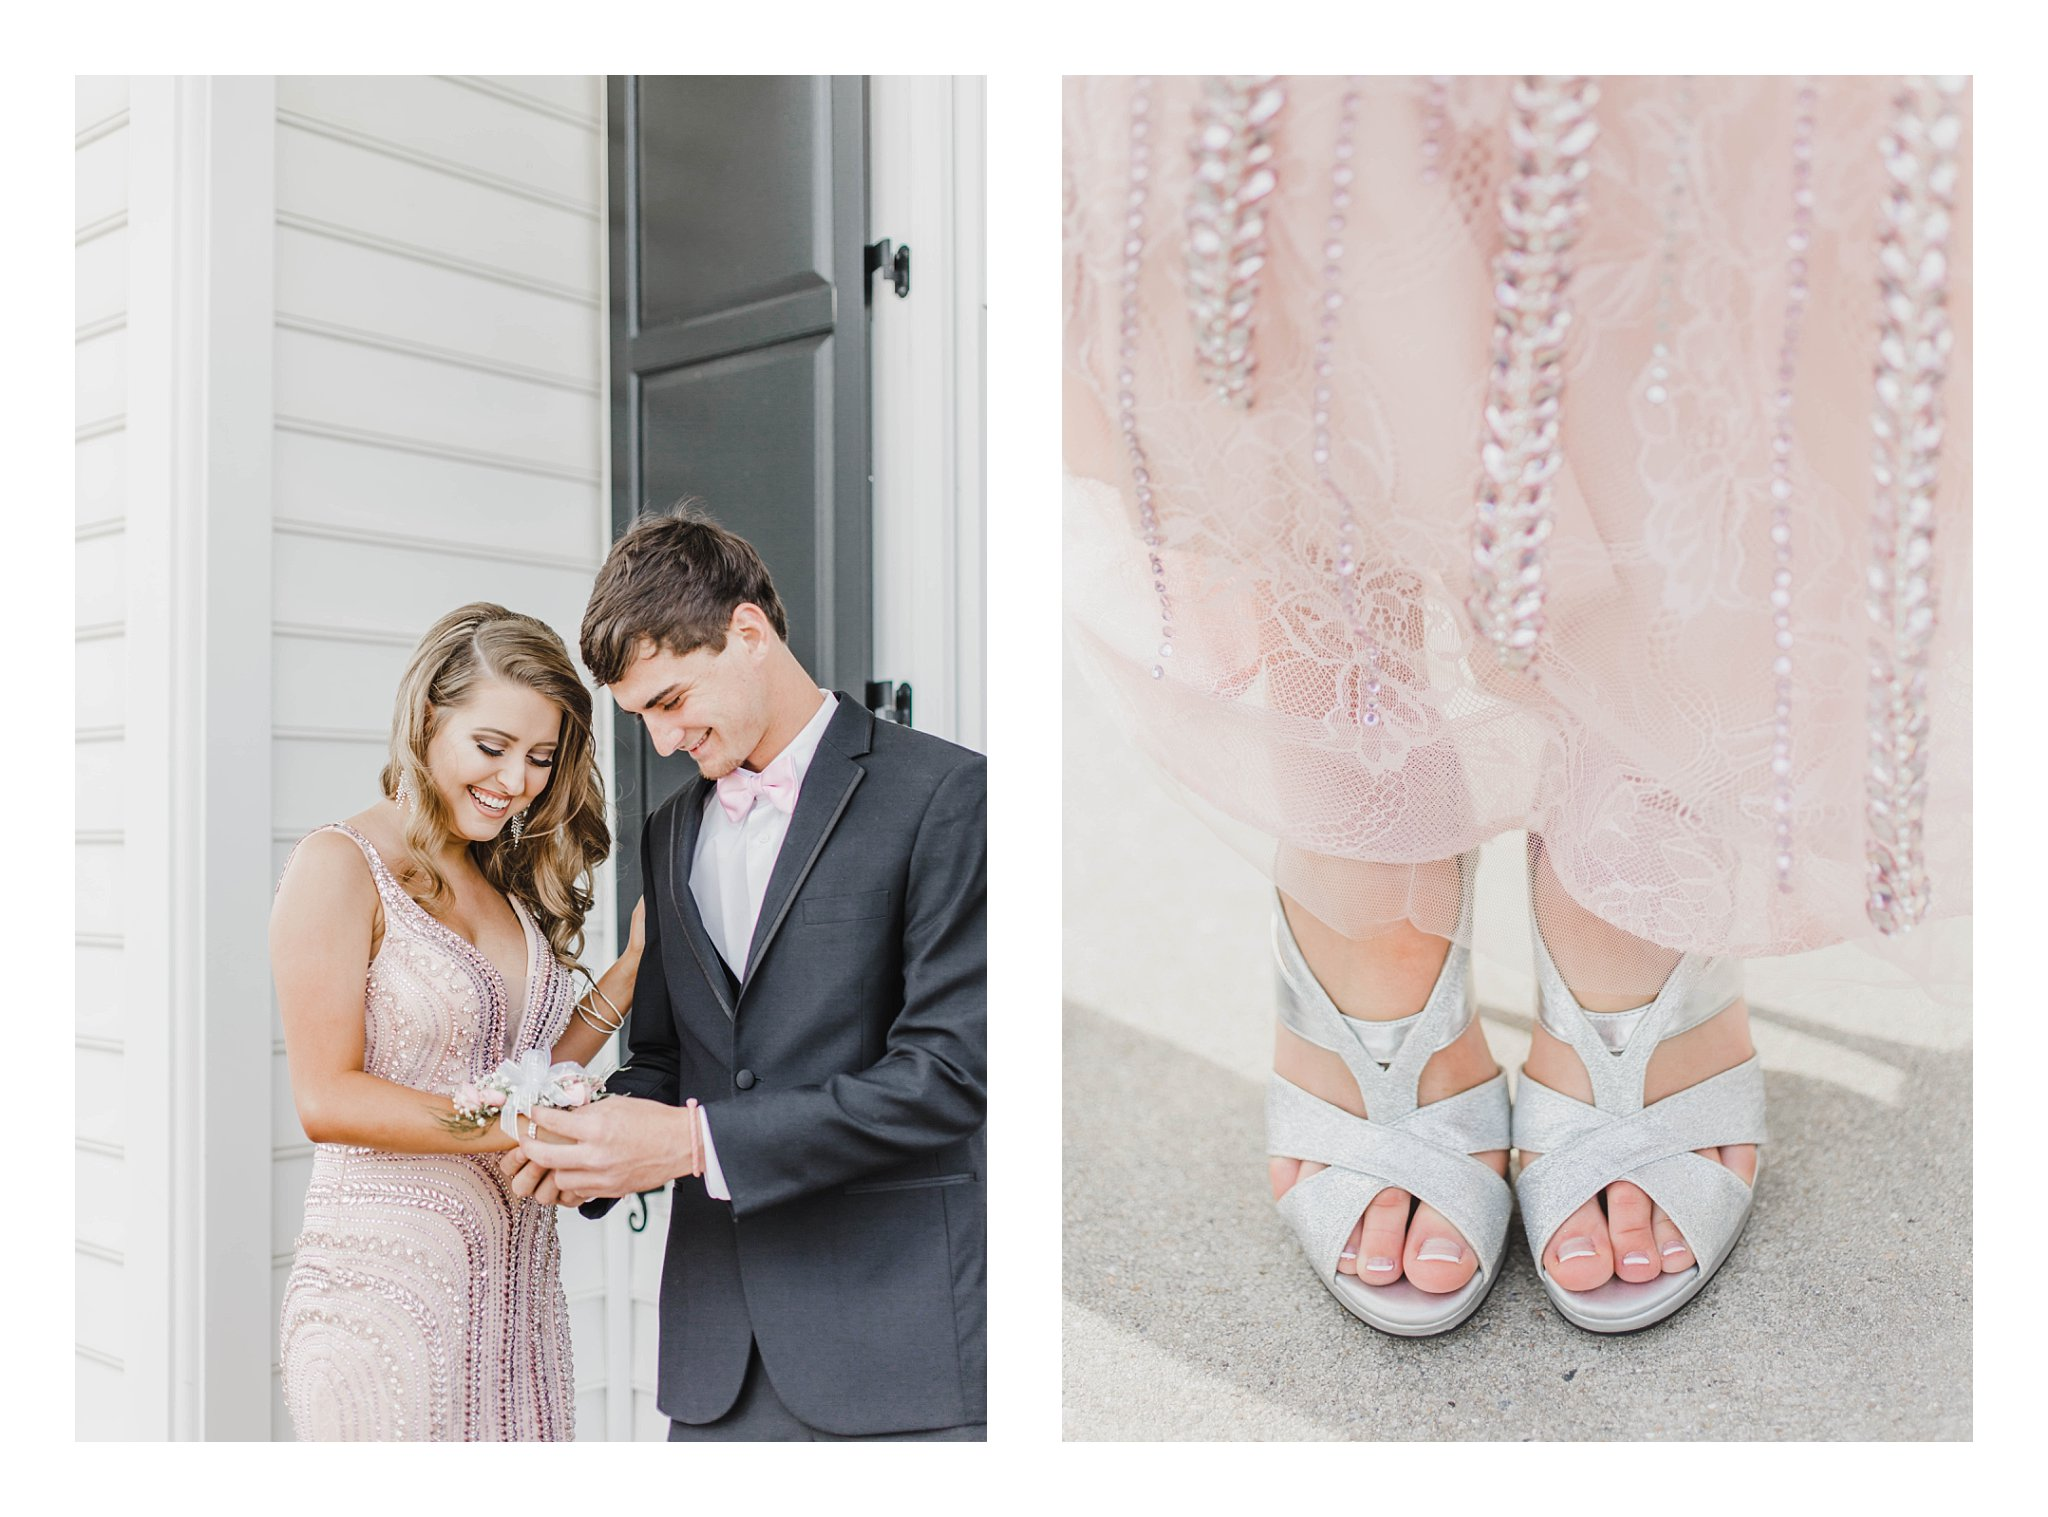 spring-belin-methodist-beaded-gown-murrells-inlet-sc-prom-photos-_0002.jpg